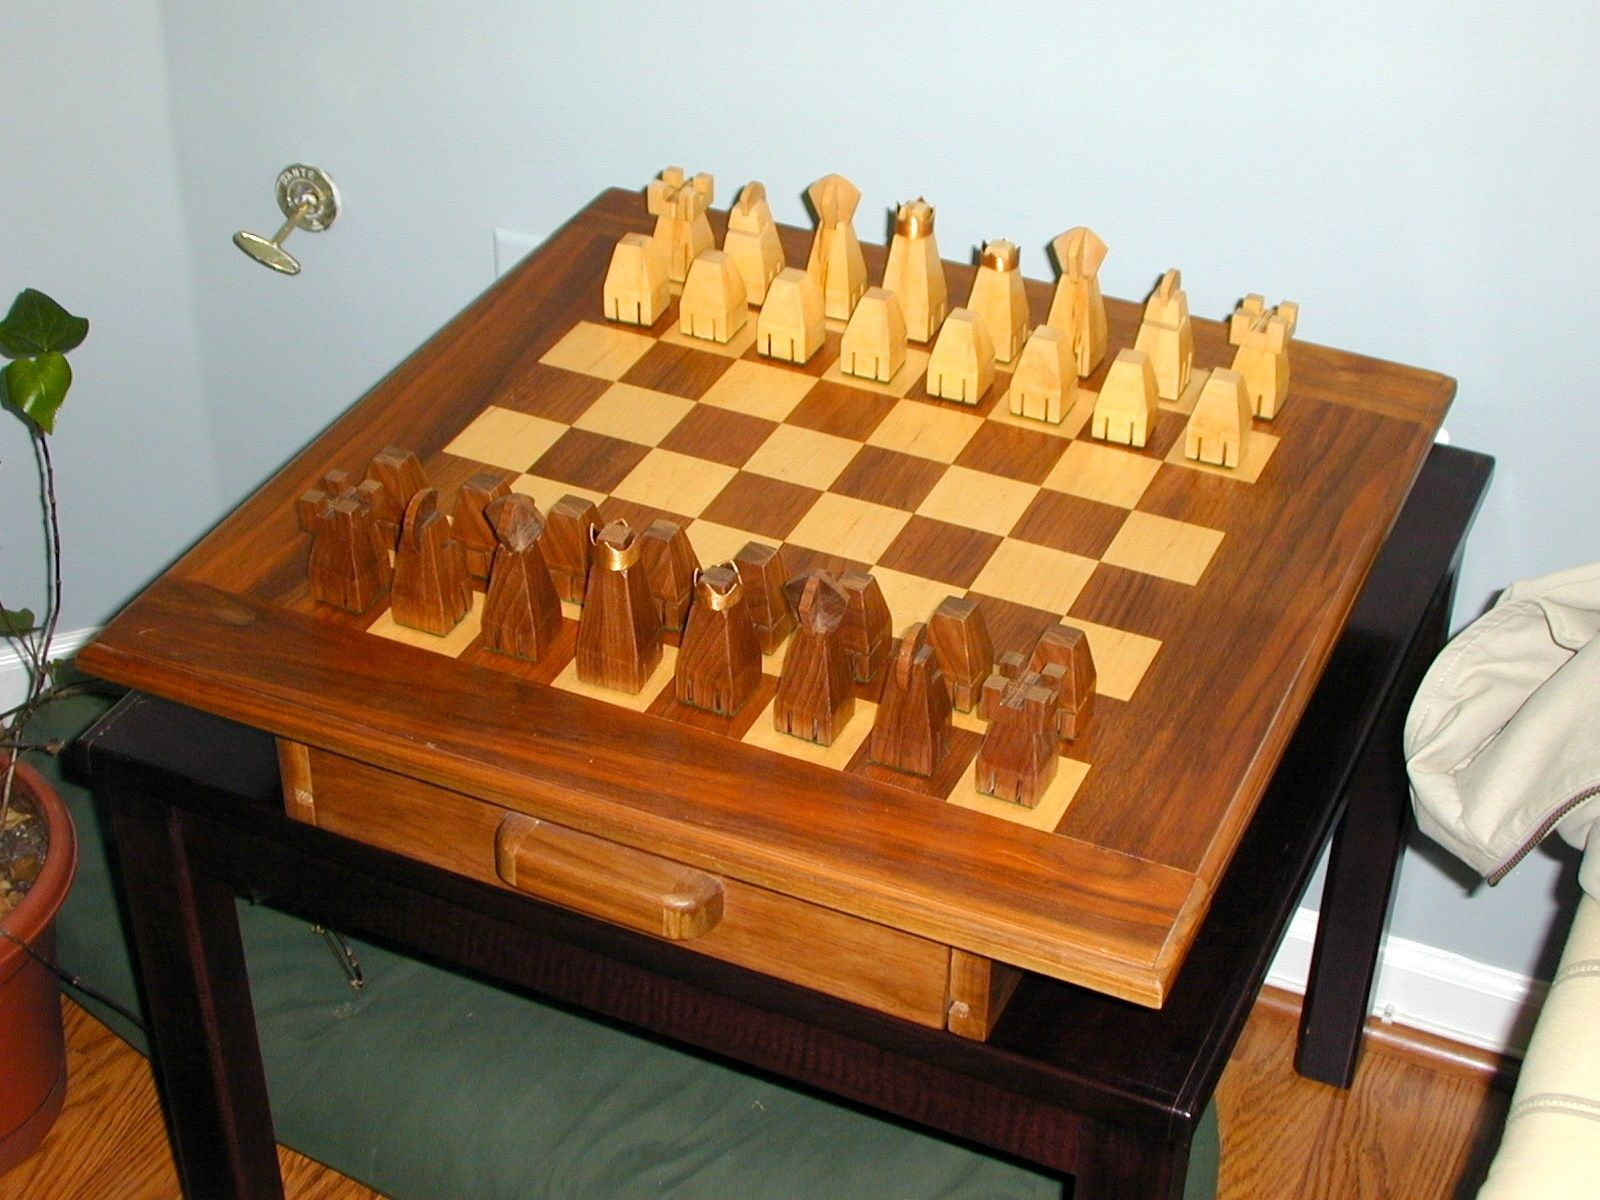 Personalized Chess Set Gift Handmade Chess Set And Board By The Plane Edge Llc